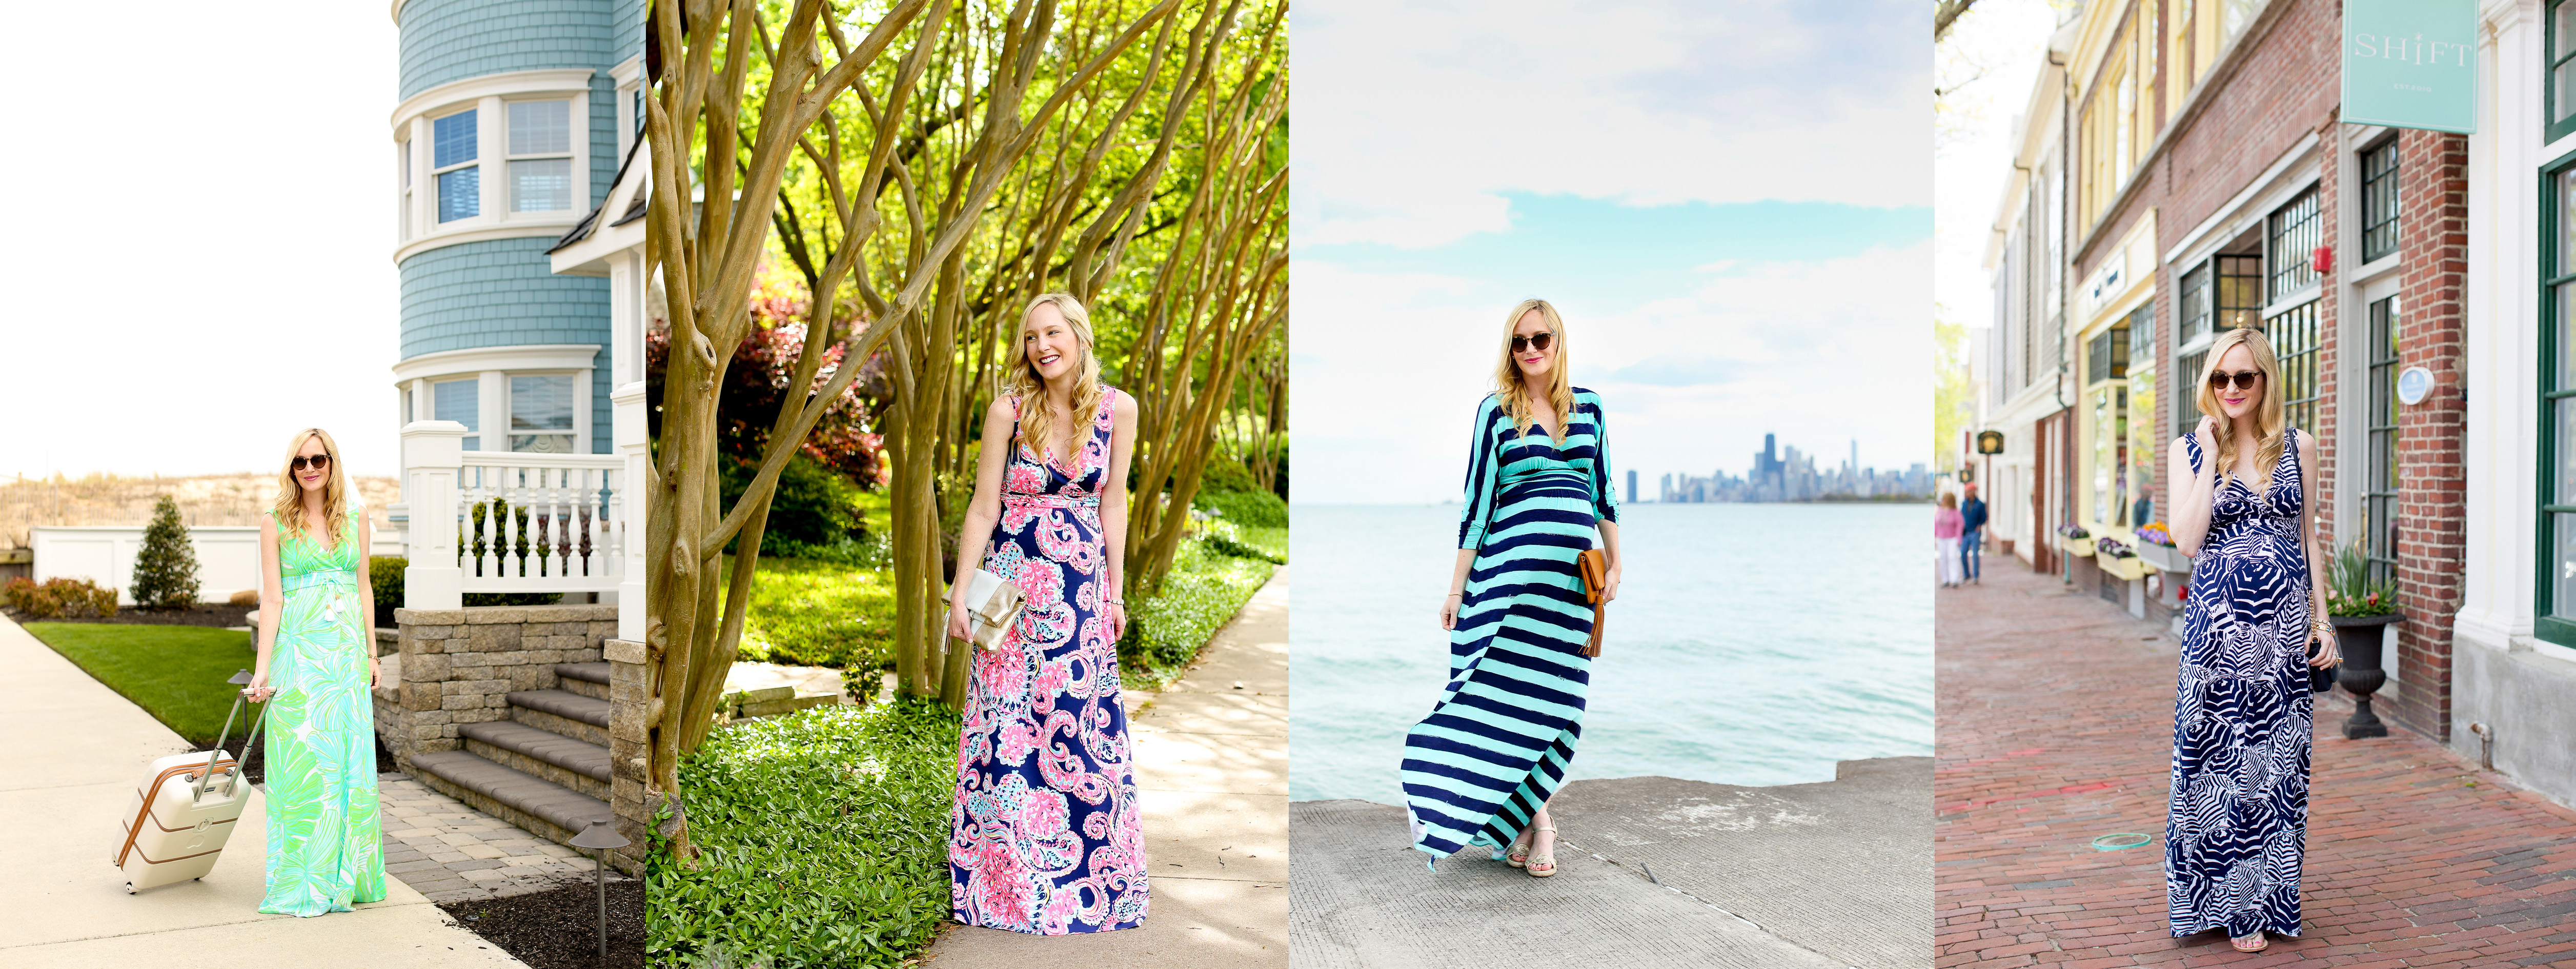 Lilly Pulitzer Maternity Dress